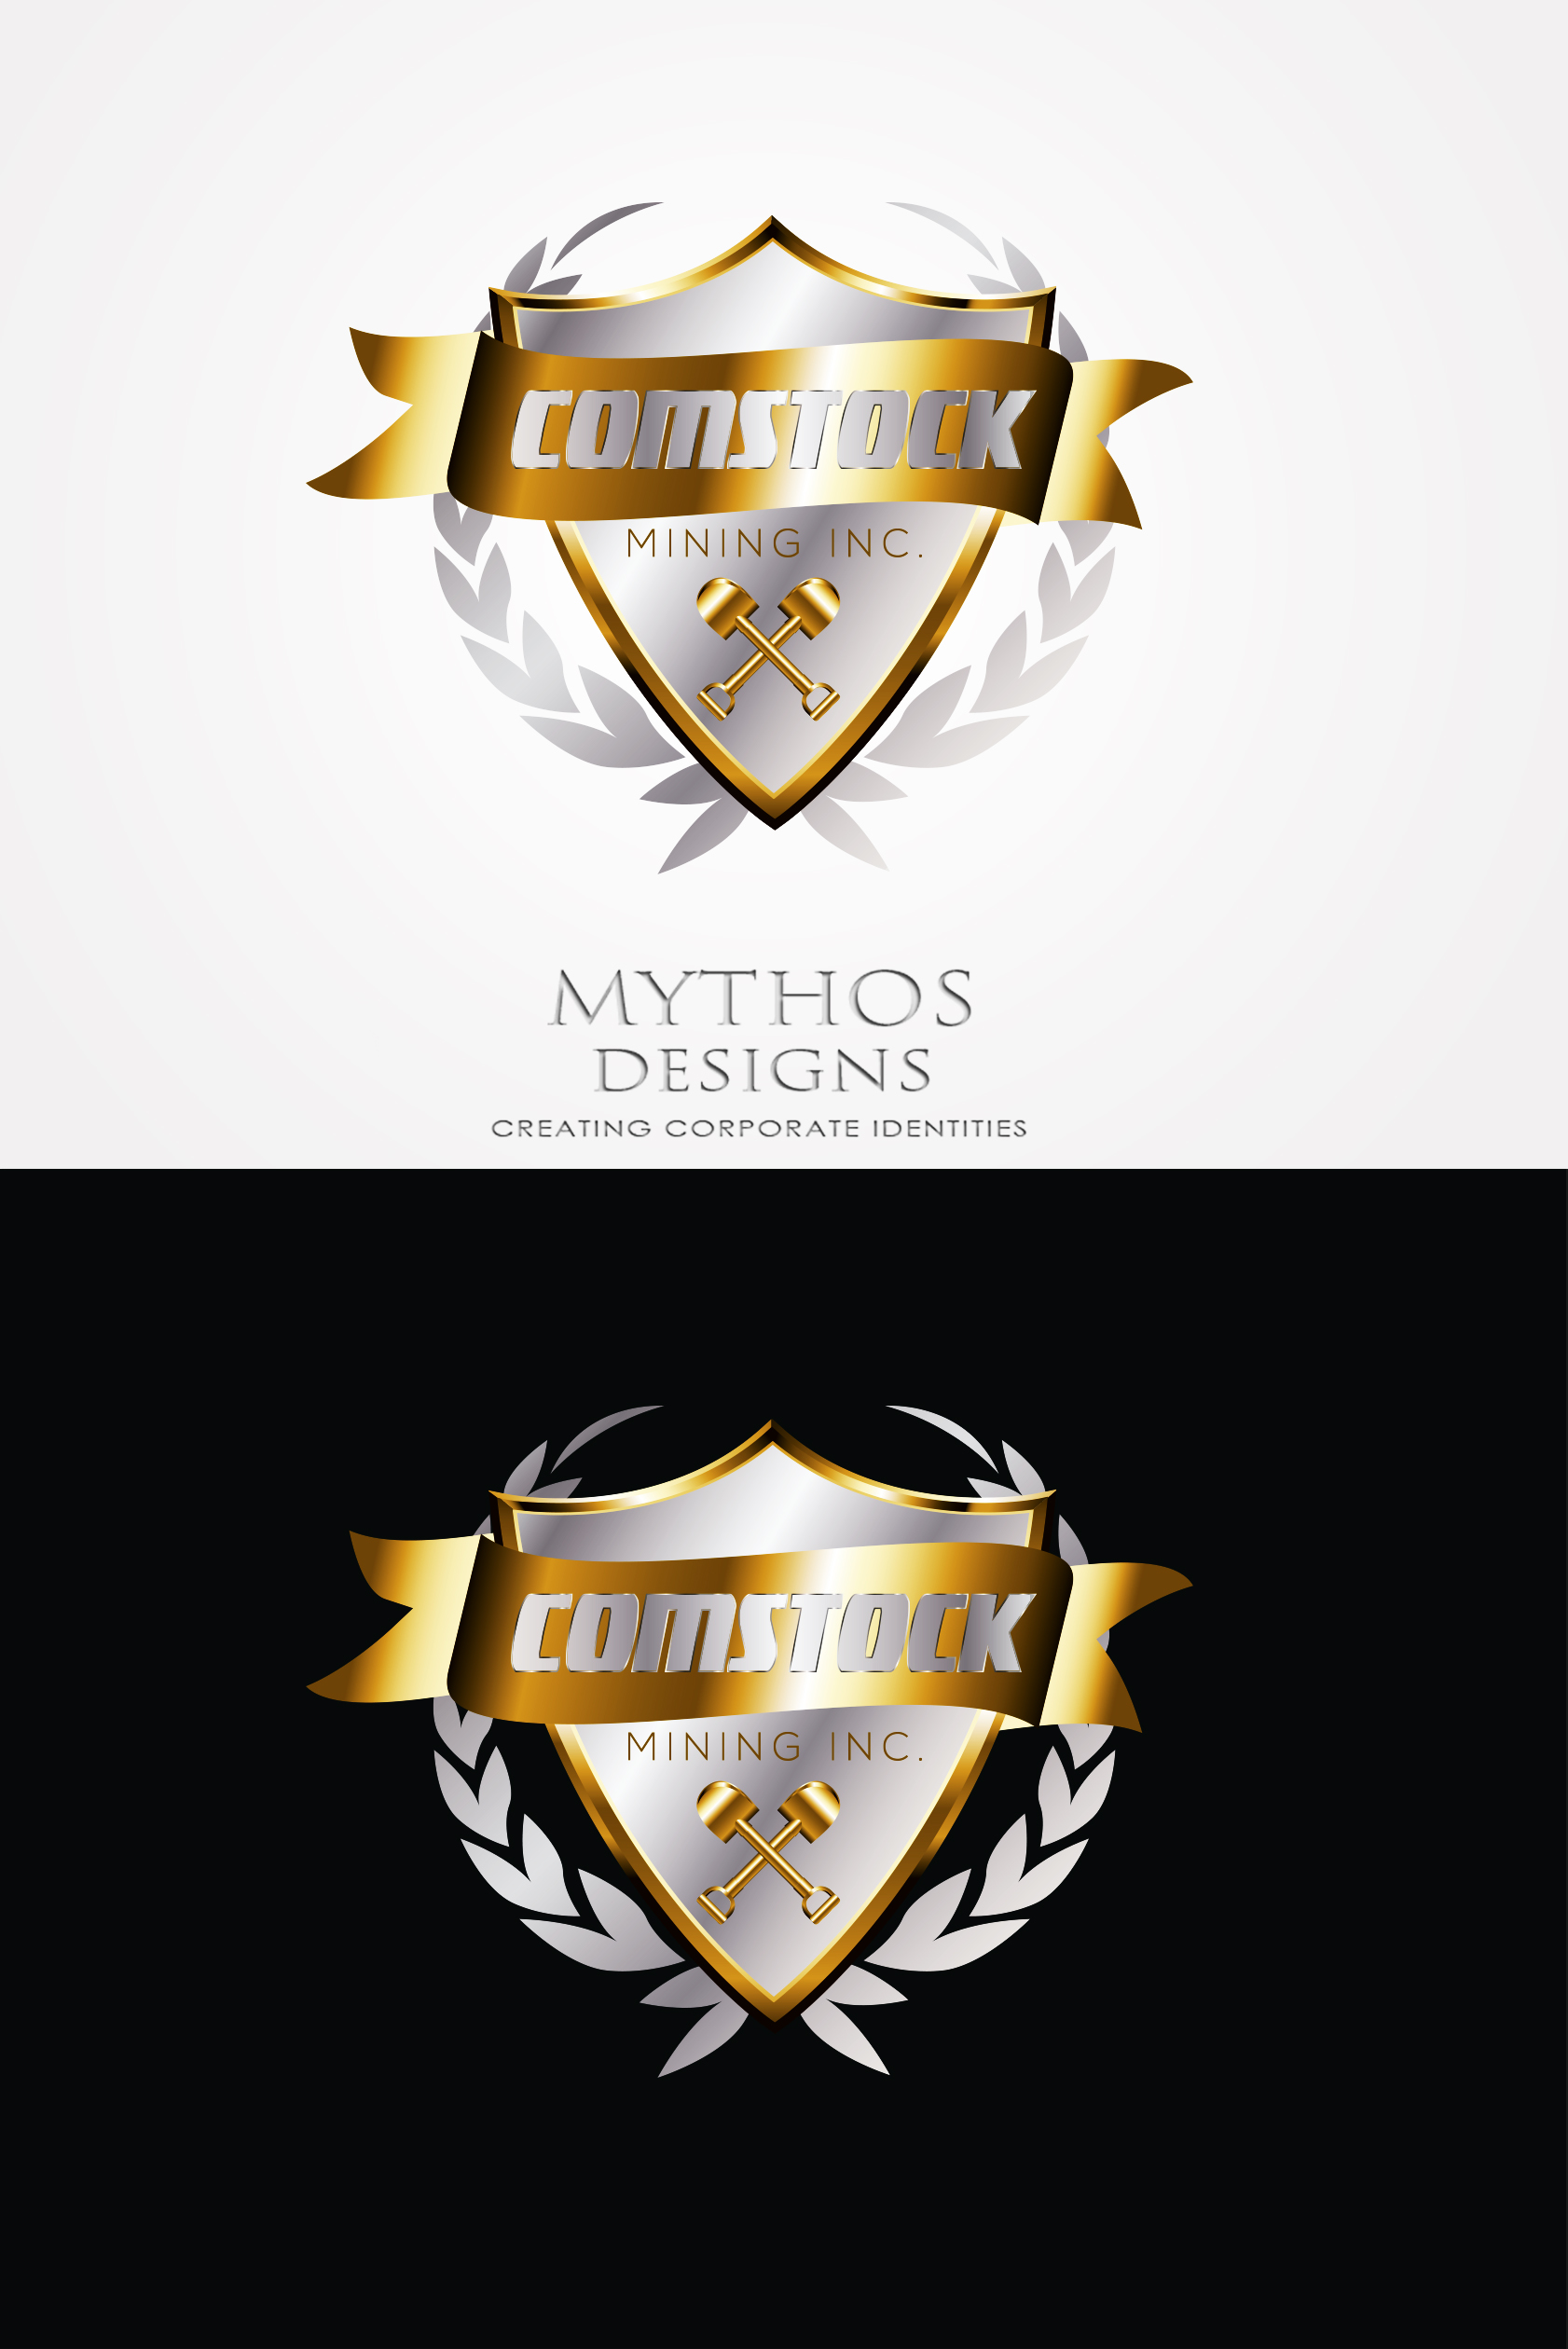 Logo Design by Mythos Designs - Entry No. 83 in the Logo Design Contest Captivating Logo Design for Comstock Mining, Inc..